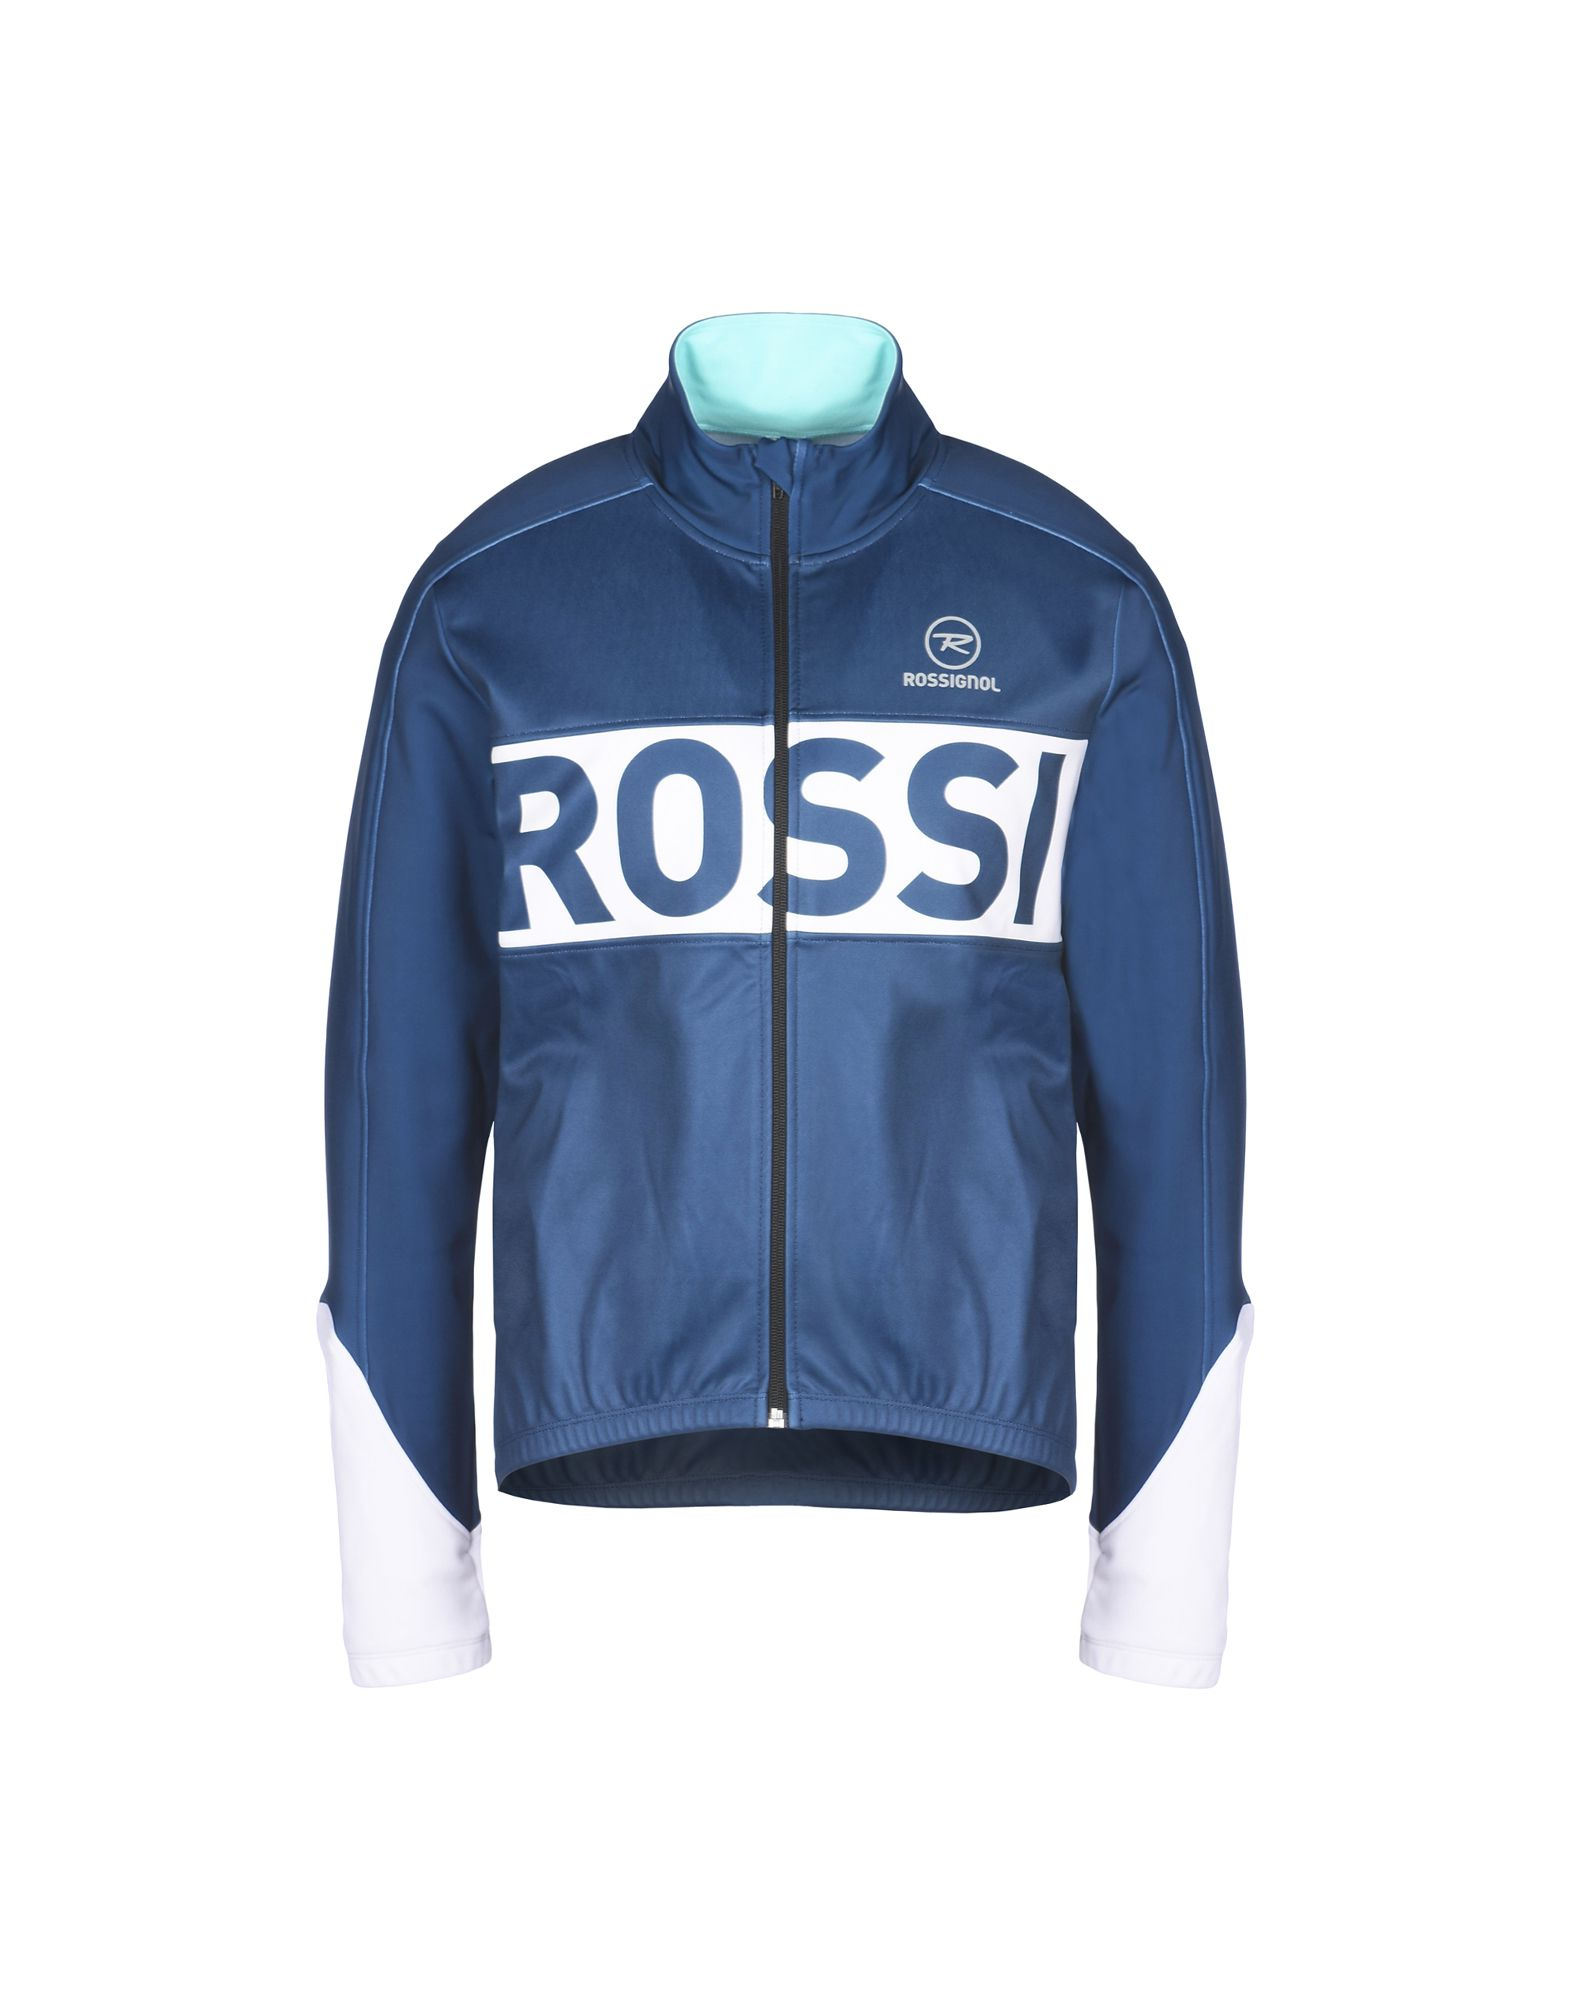 ROSSIGNOL Толстовка ale cycling set winter thermal fleece long sleeves cycling jerseys ropa maillot ciclismo bicycle mtb bike cycling clothing w010